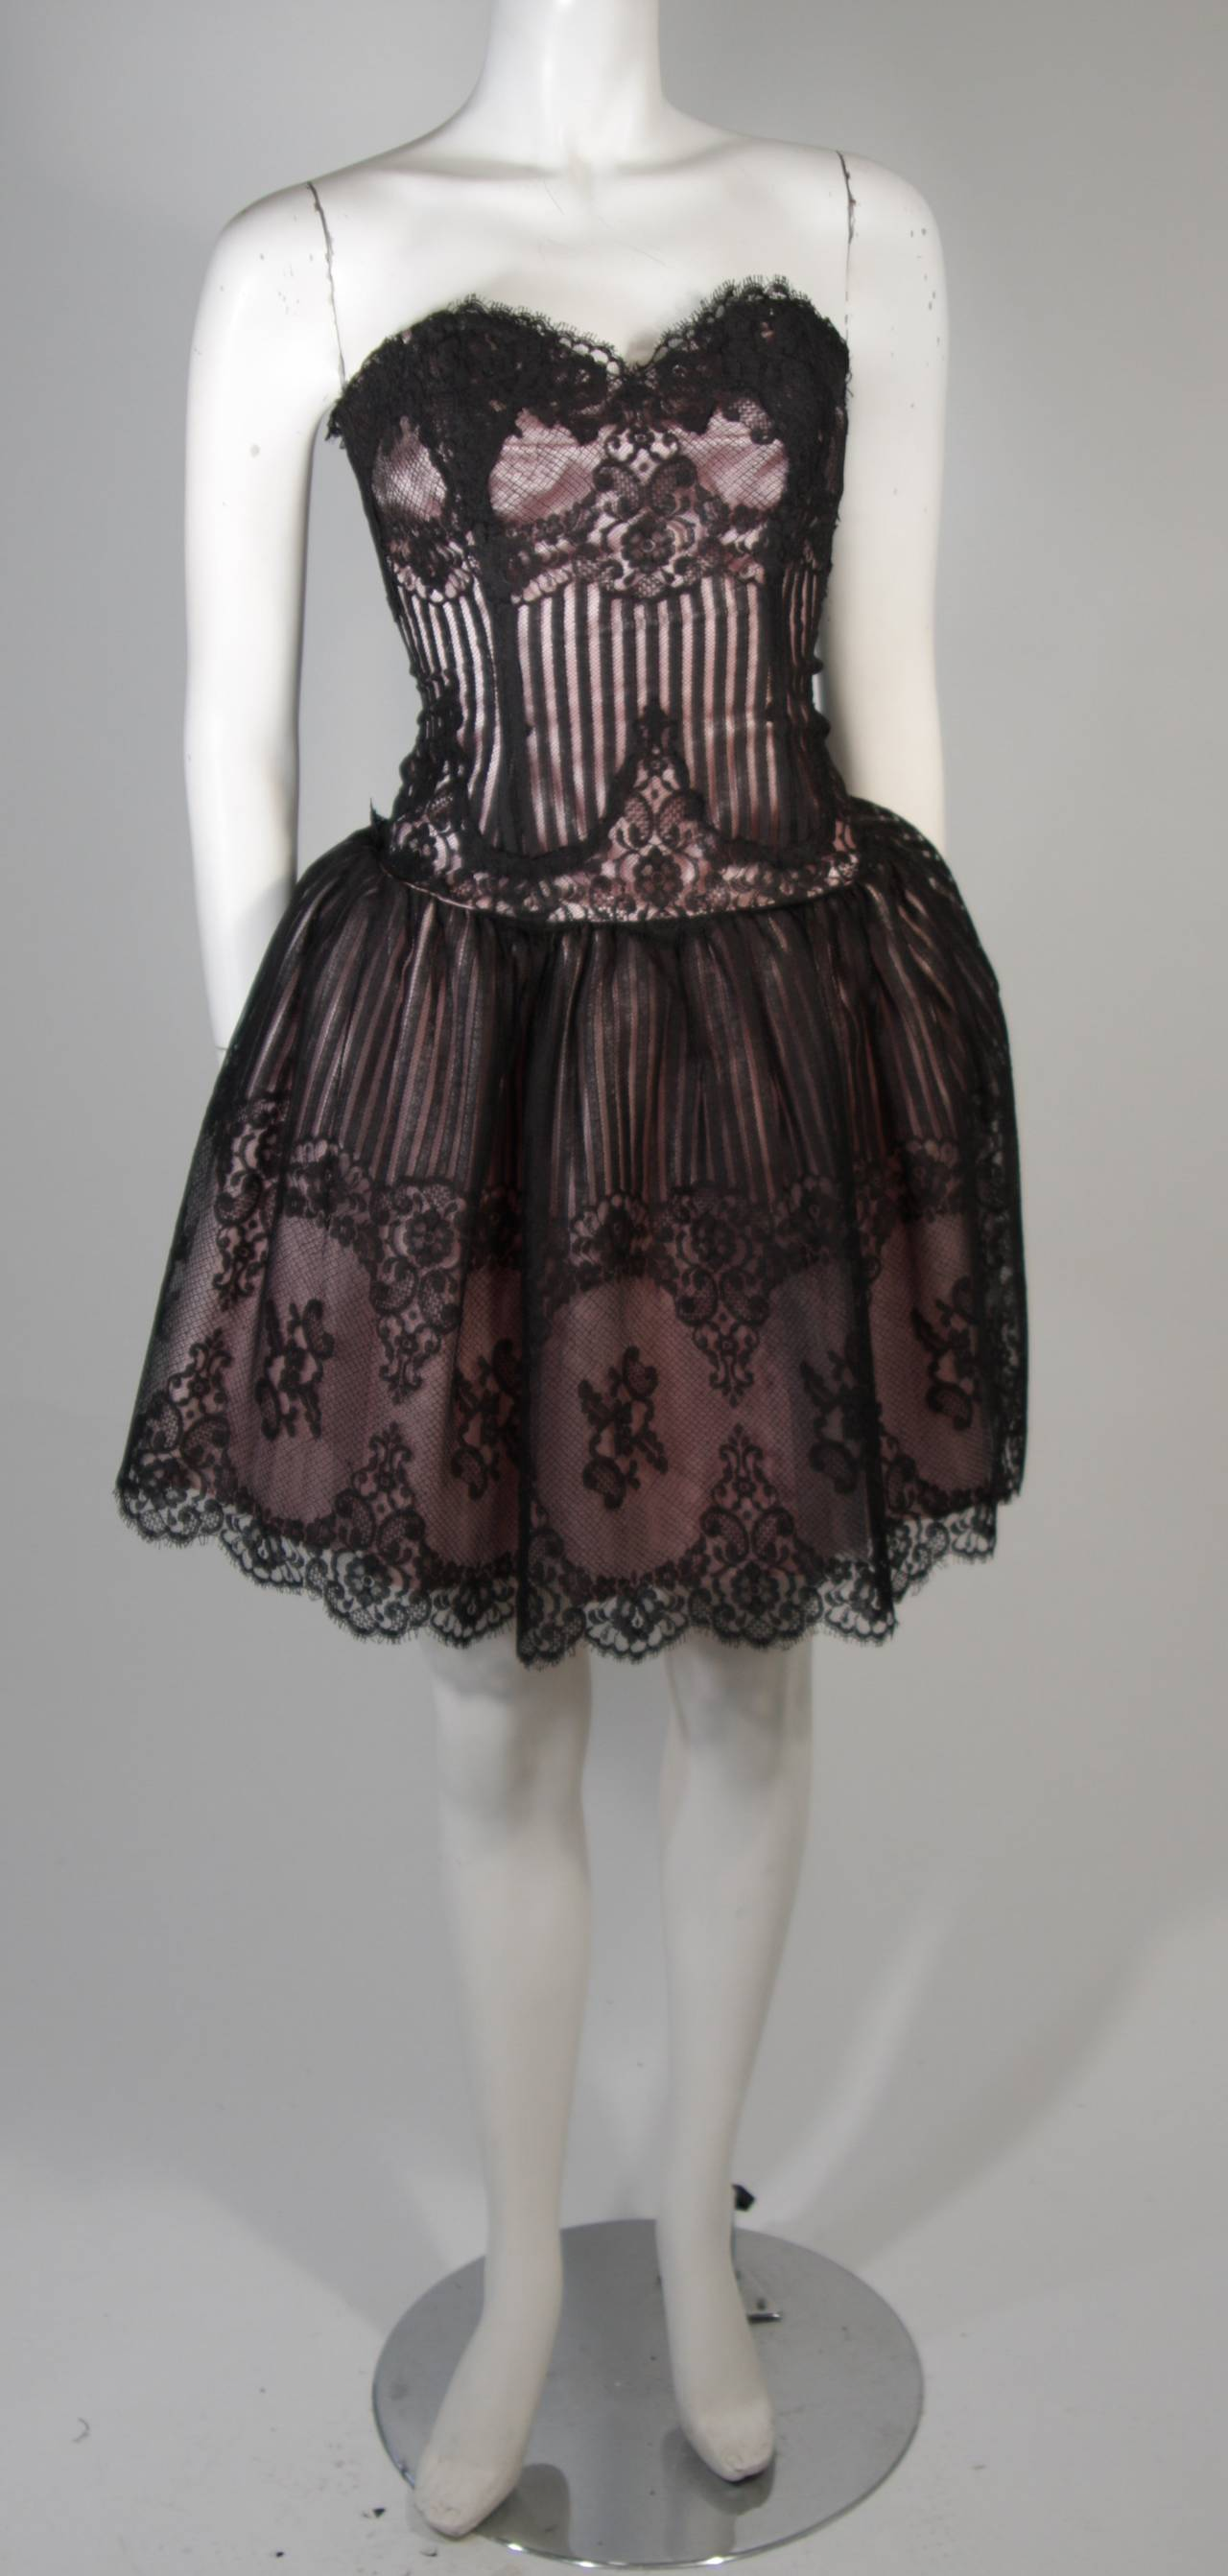 Women's Victor Costa Strapless Black Lace Cocktail Dress with Pink Satin Size 40 For Sale